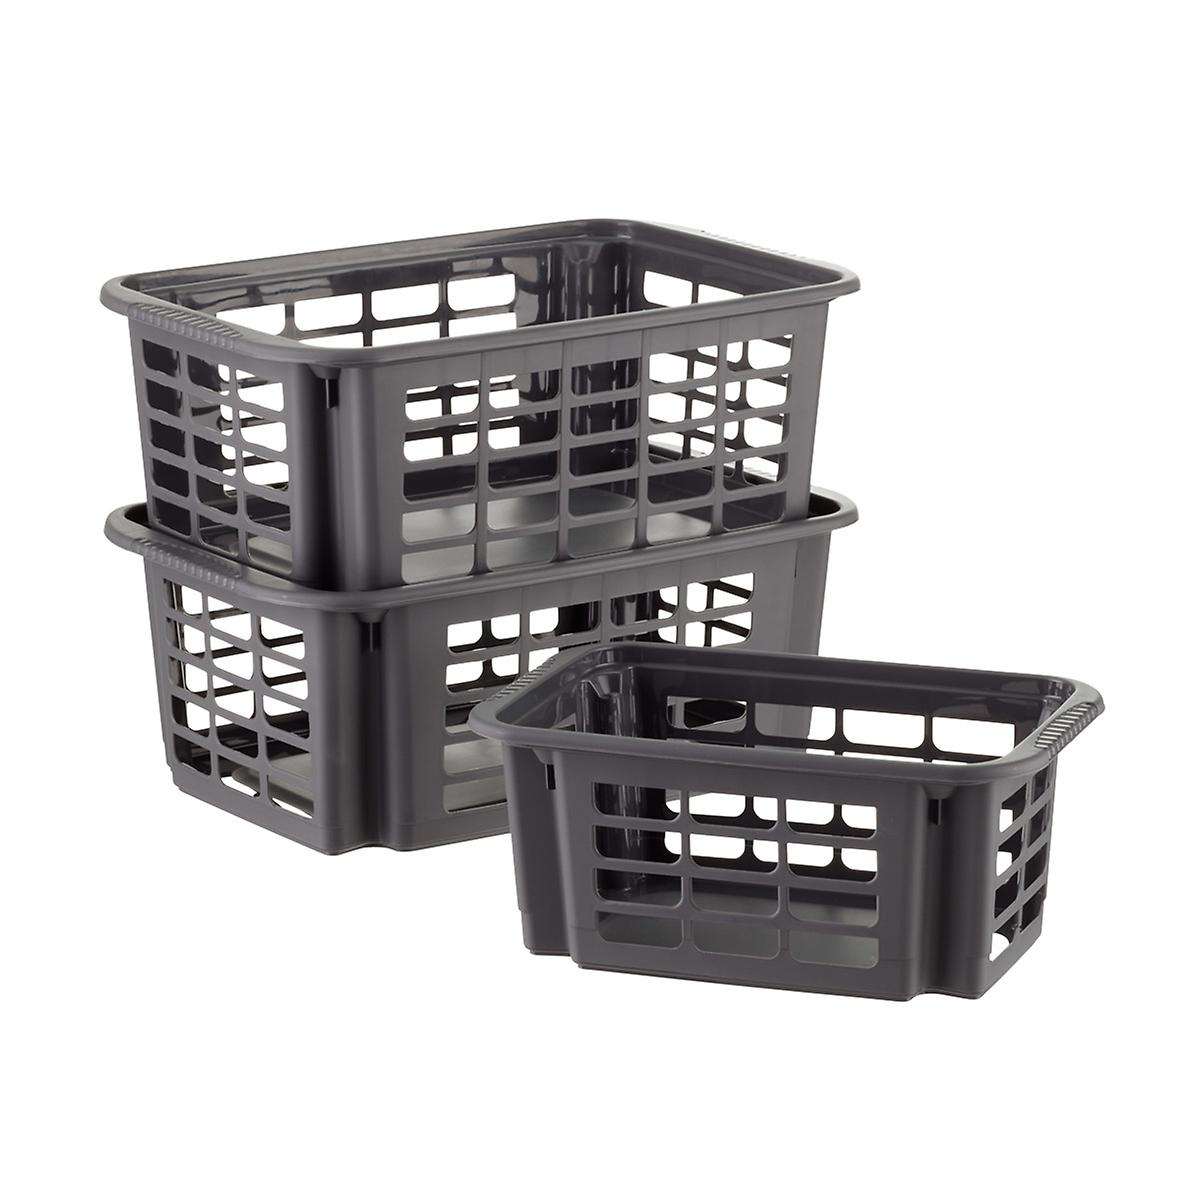 Graphite Stackable Plastic Storage Baskets